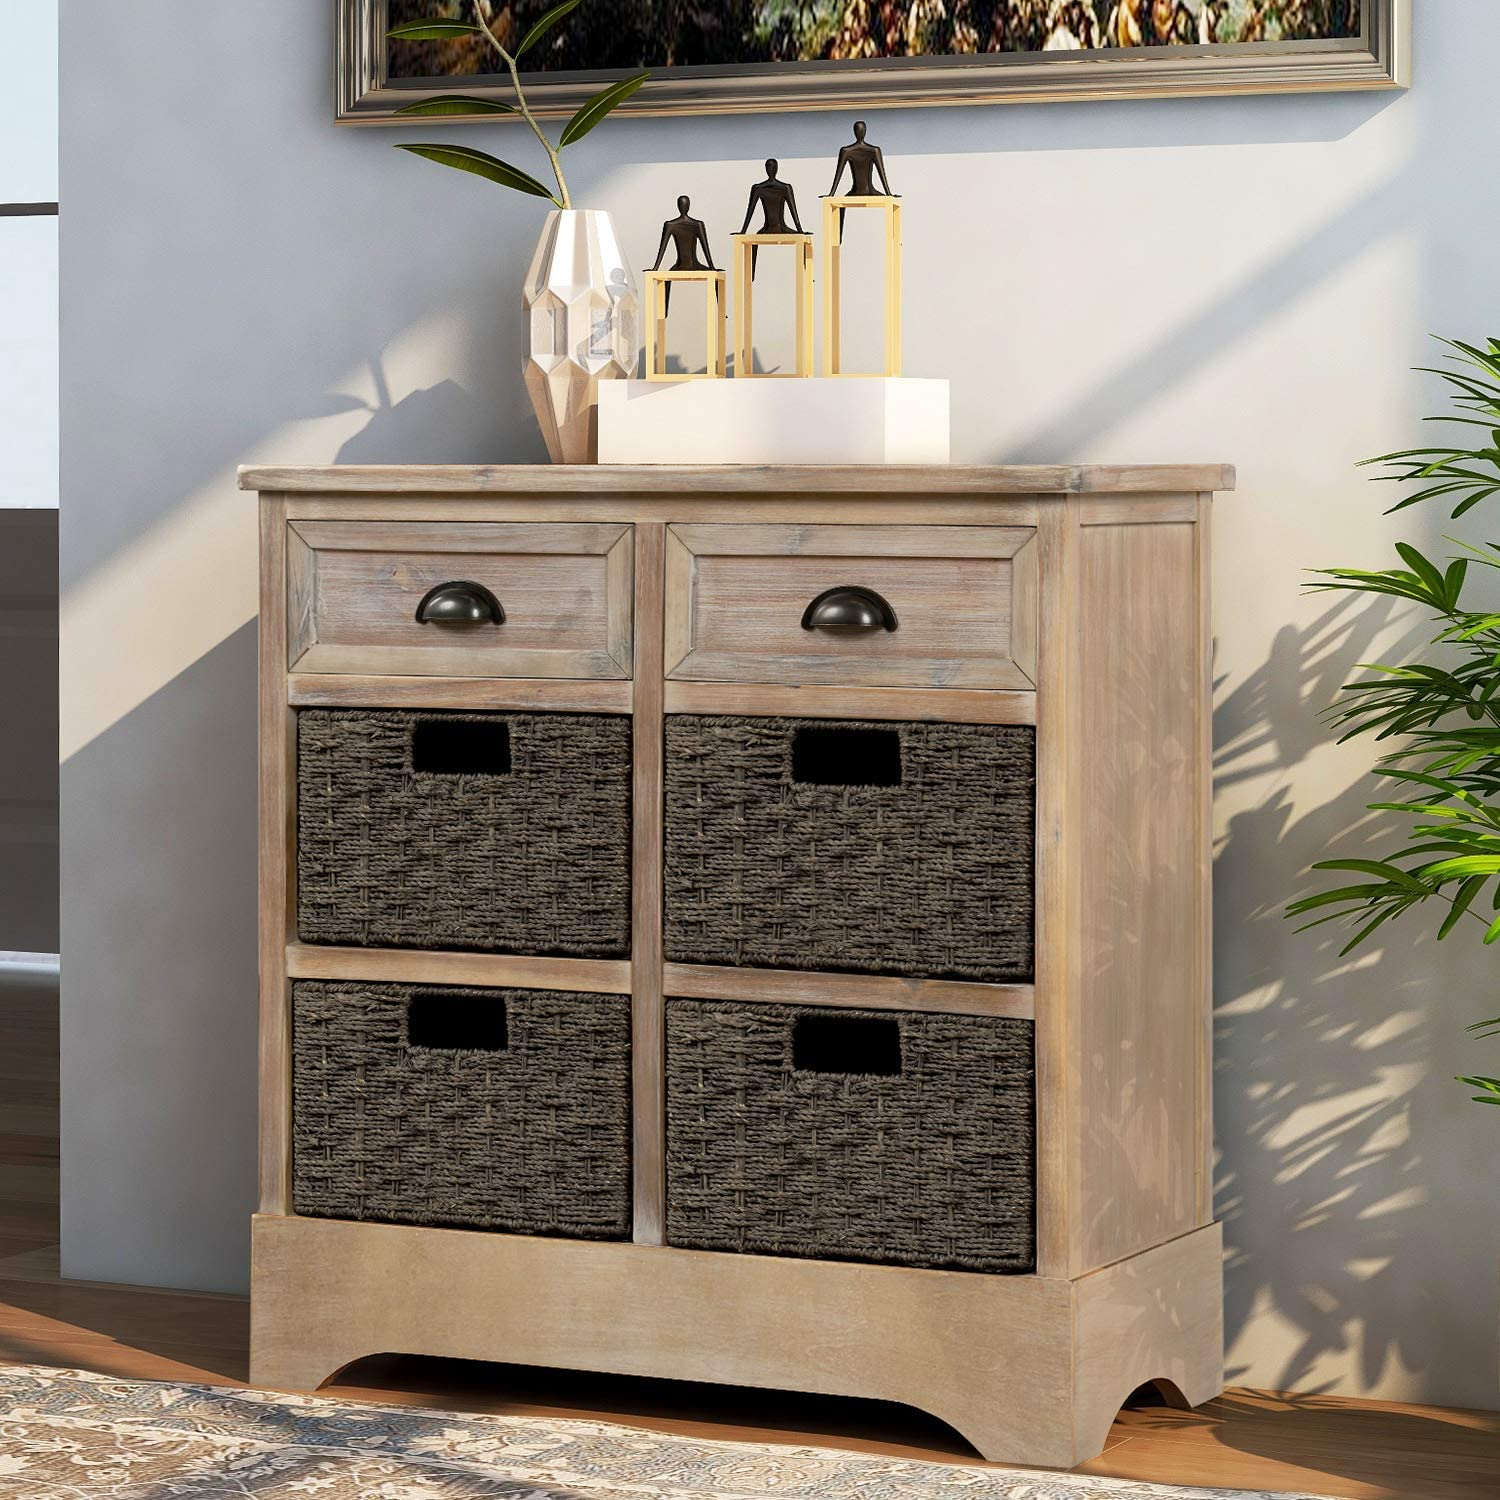 Storage 受注生産品 Cabinet with 2 Drawers and 数量限定アウトレット最安価格 4 Baskest for Fabric Entryway